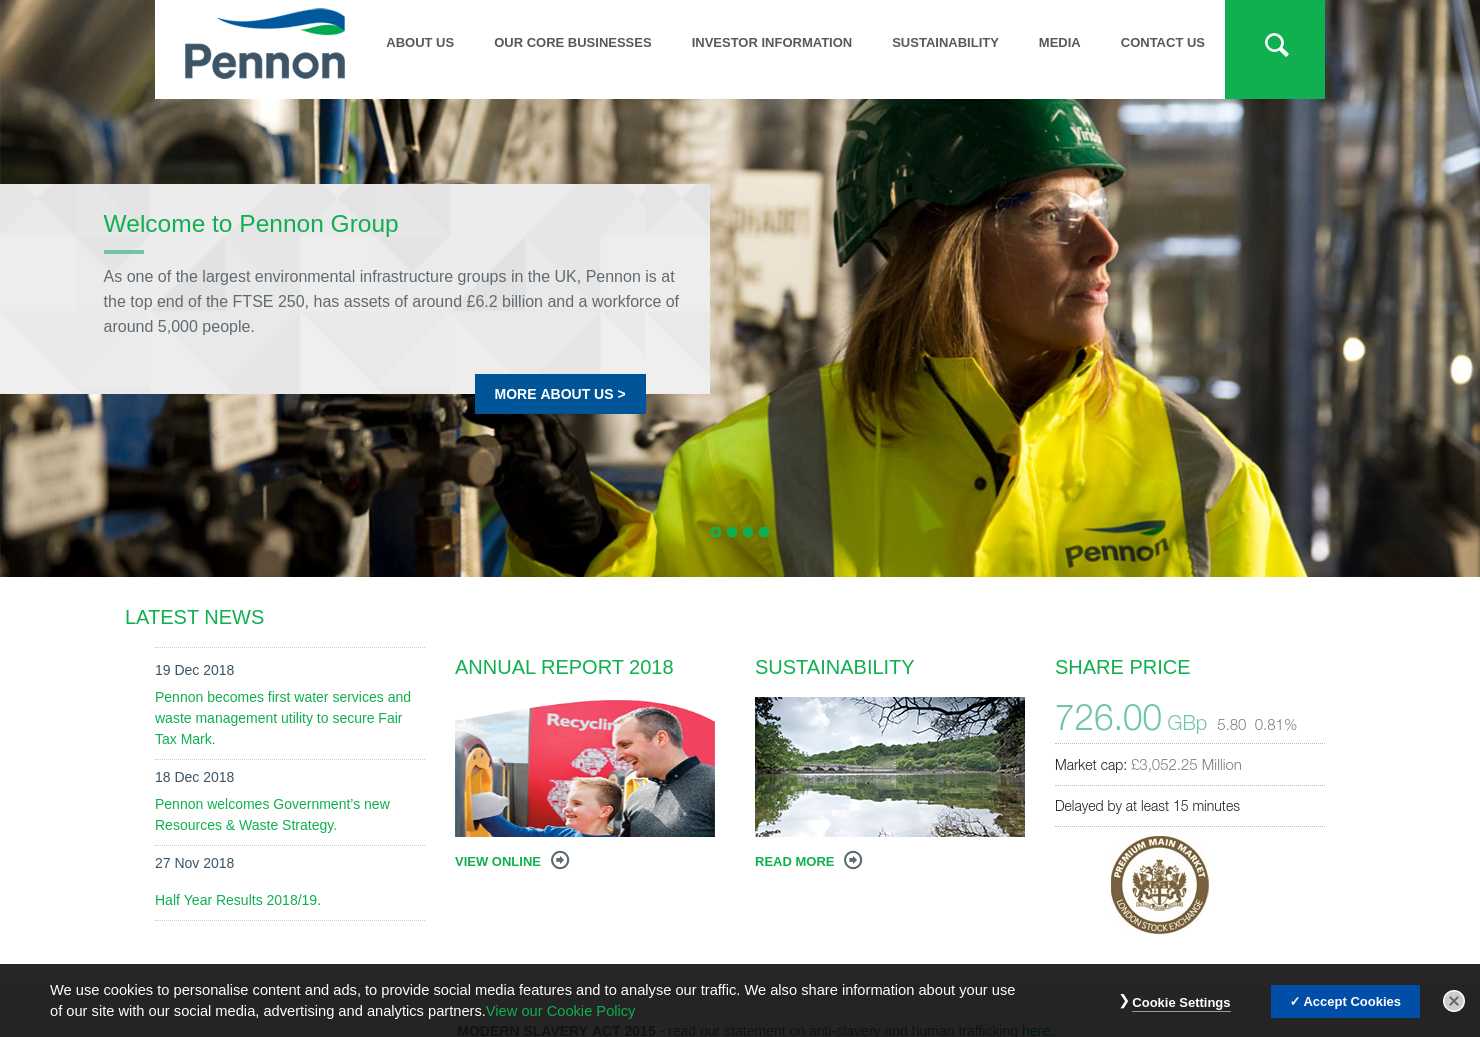 Pennon Home Page